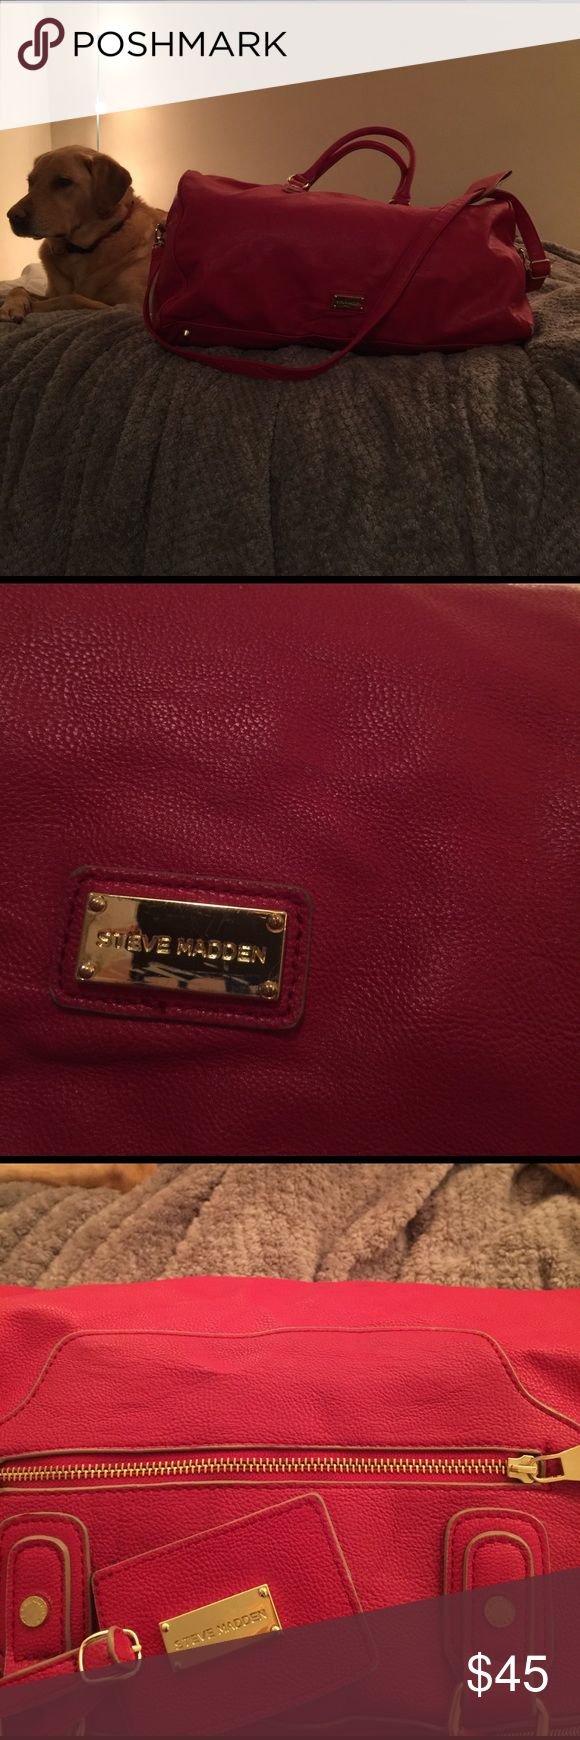 Steve Madden Leather Weekender Bag Steve Madden red leather weekender bag. Size large. One outer zipper pocket with luggage tag. One inner zipper pocket and two open pockets. Hand carry and shoulder carry that is adjustable. Steve Madden Bags Travel Bags